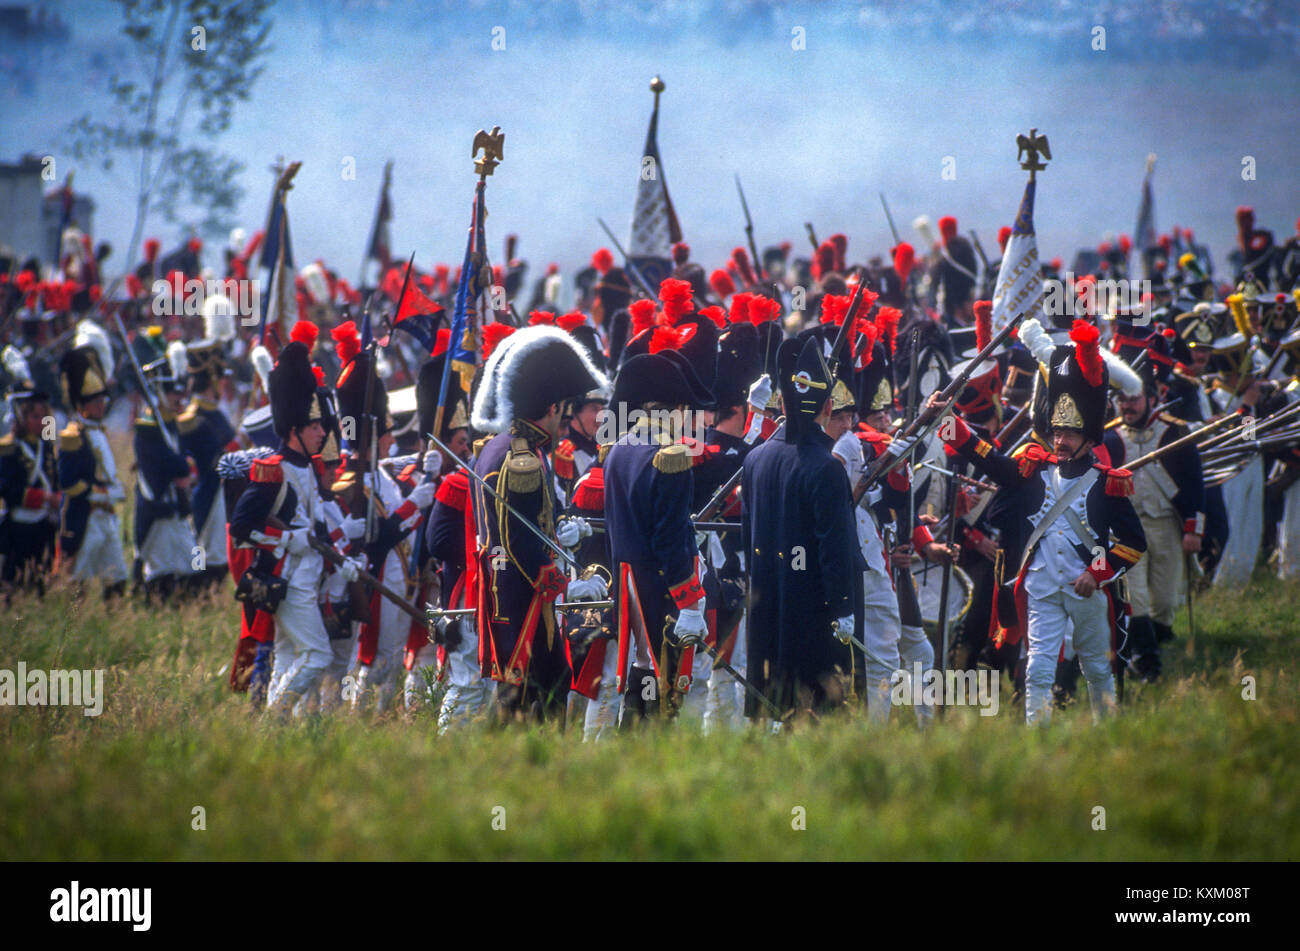 The Battle of Waterloo 175th anniversary re-enactment on June 19th 1990: - Stock Image